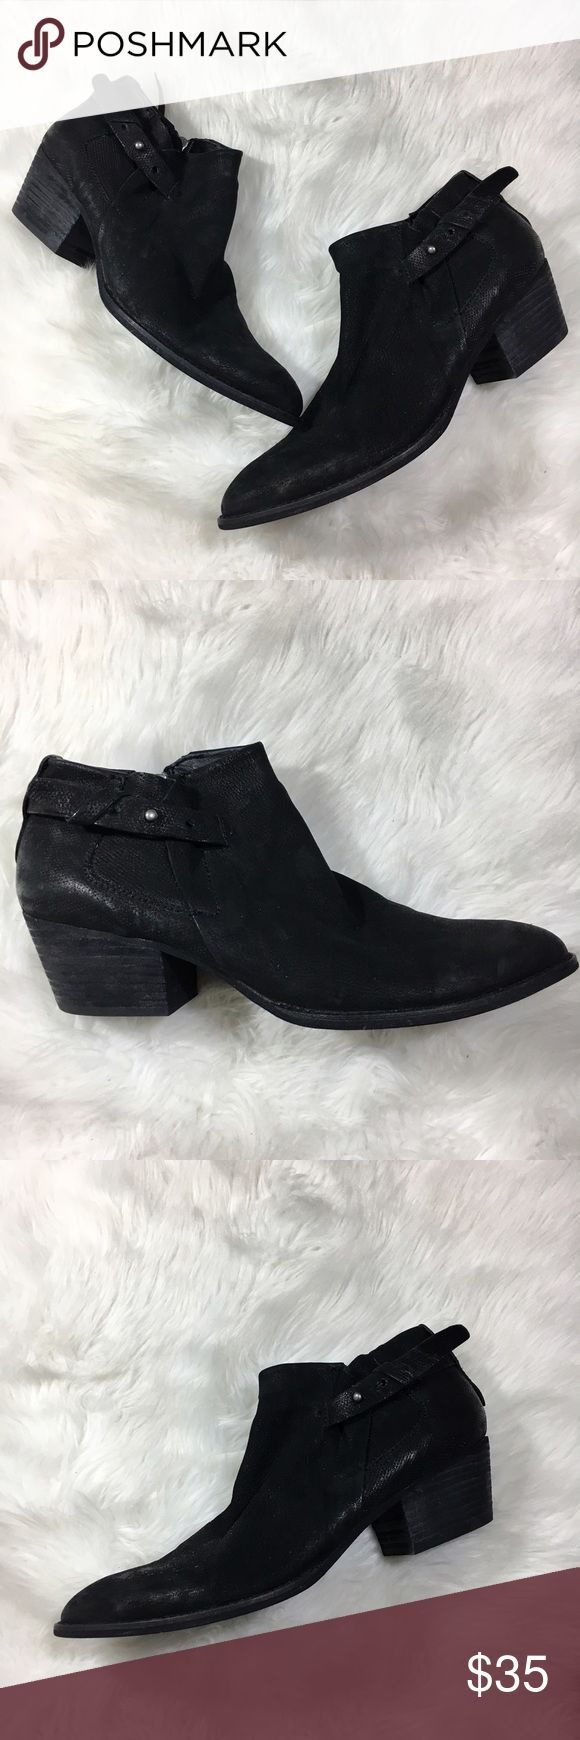 """Dolce Vita distressed suede ankle bootie Buckle Ankle boots with a buckle strap, distressed suede with minor marks on one toe of the boot. 2"""" heel Shoes Ankle Boots & Booties"""